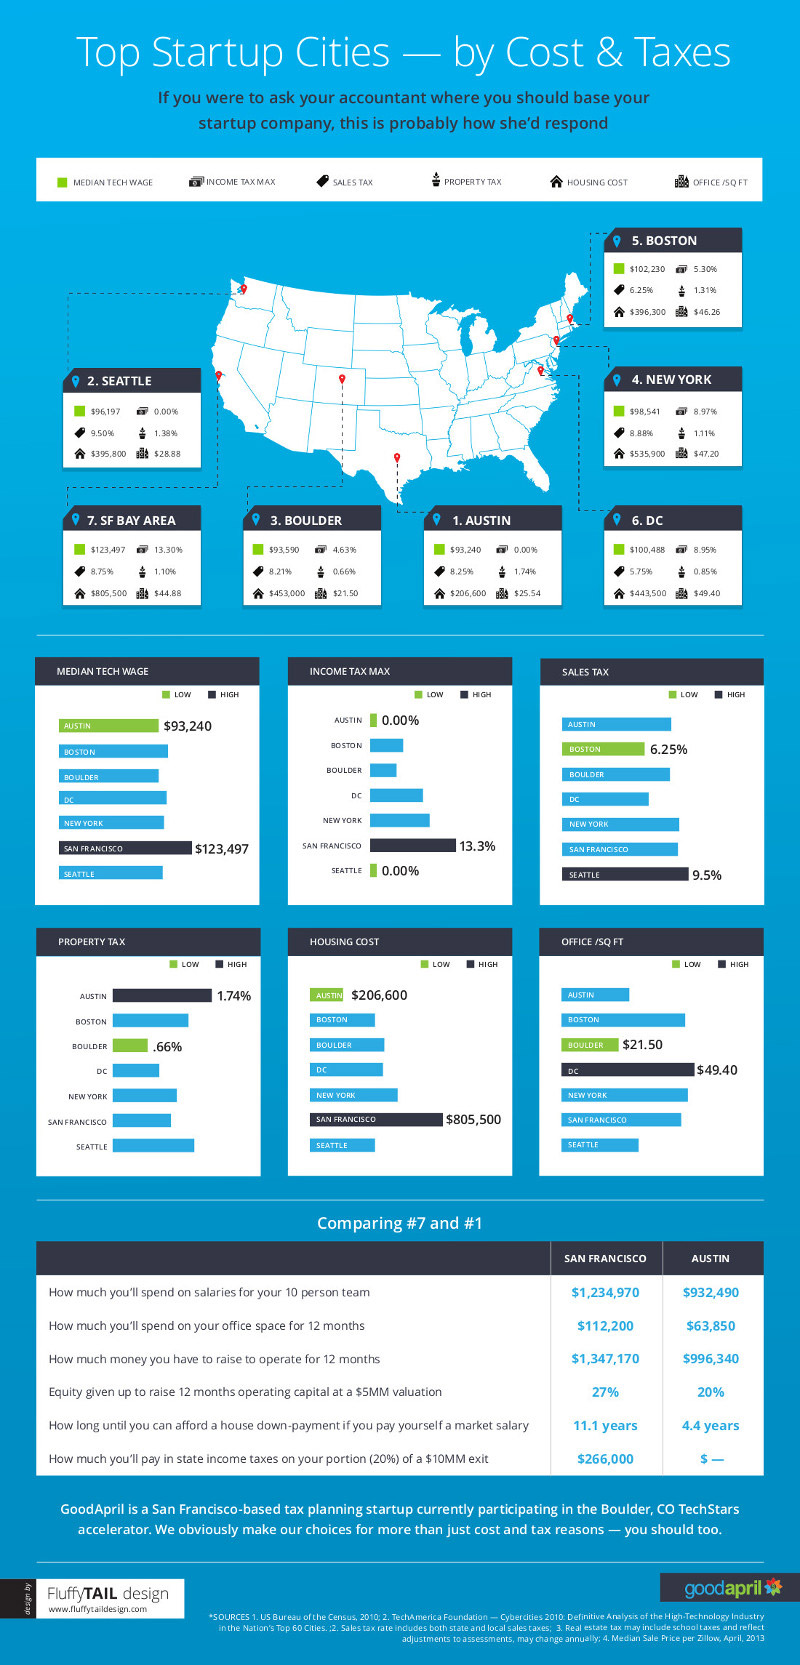 The 7 Hottest Startup Scenes in the U.S. [Infographic]